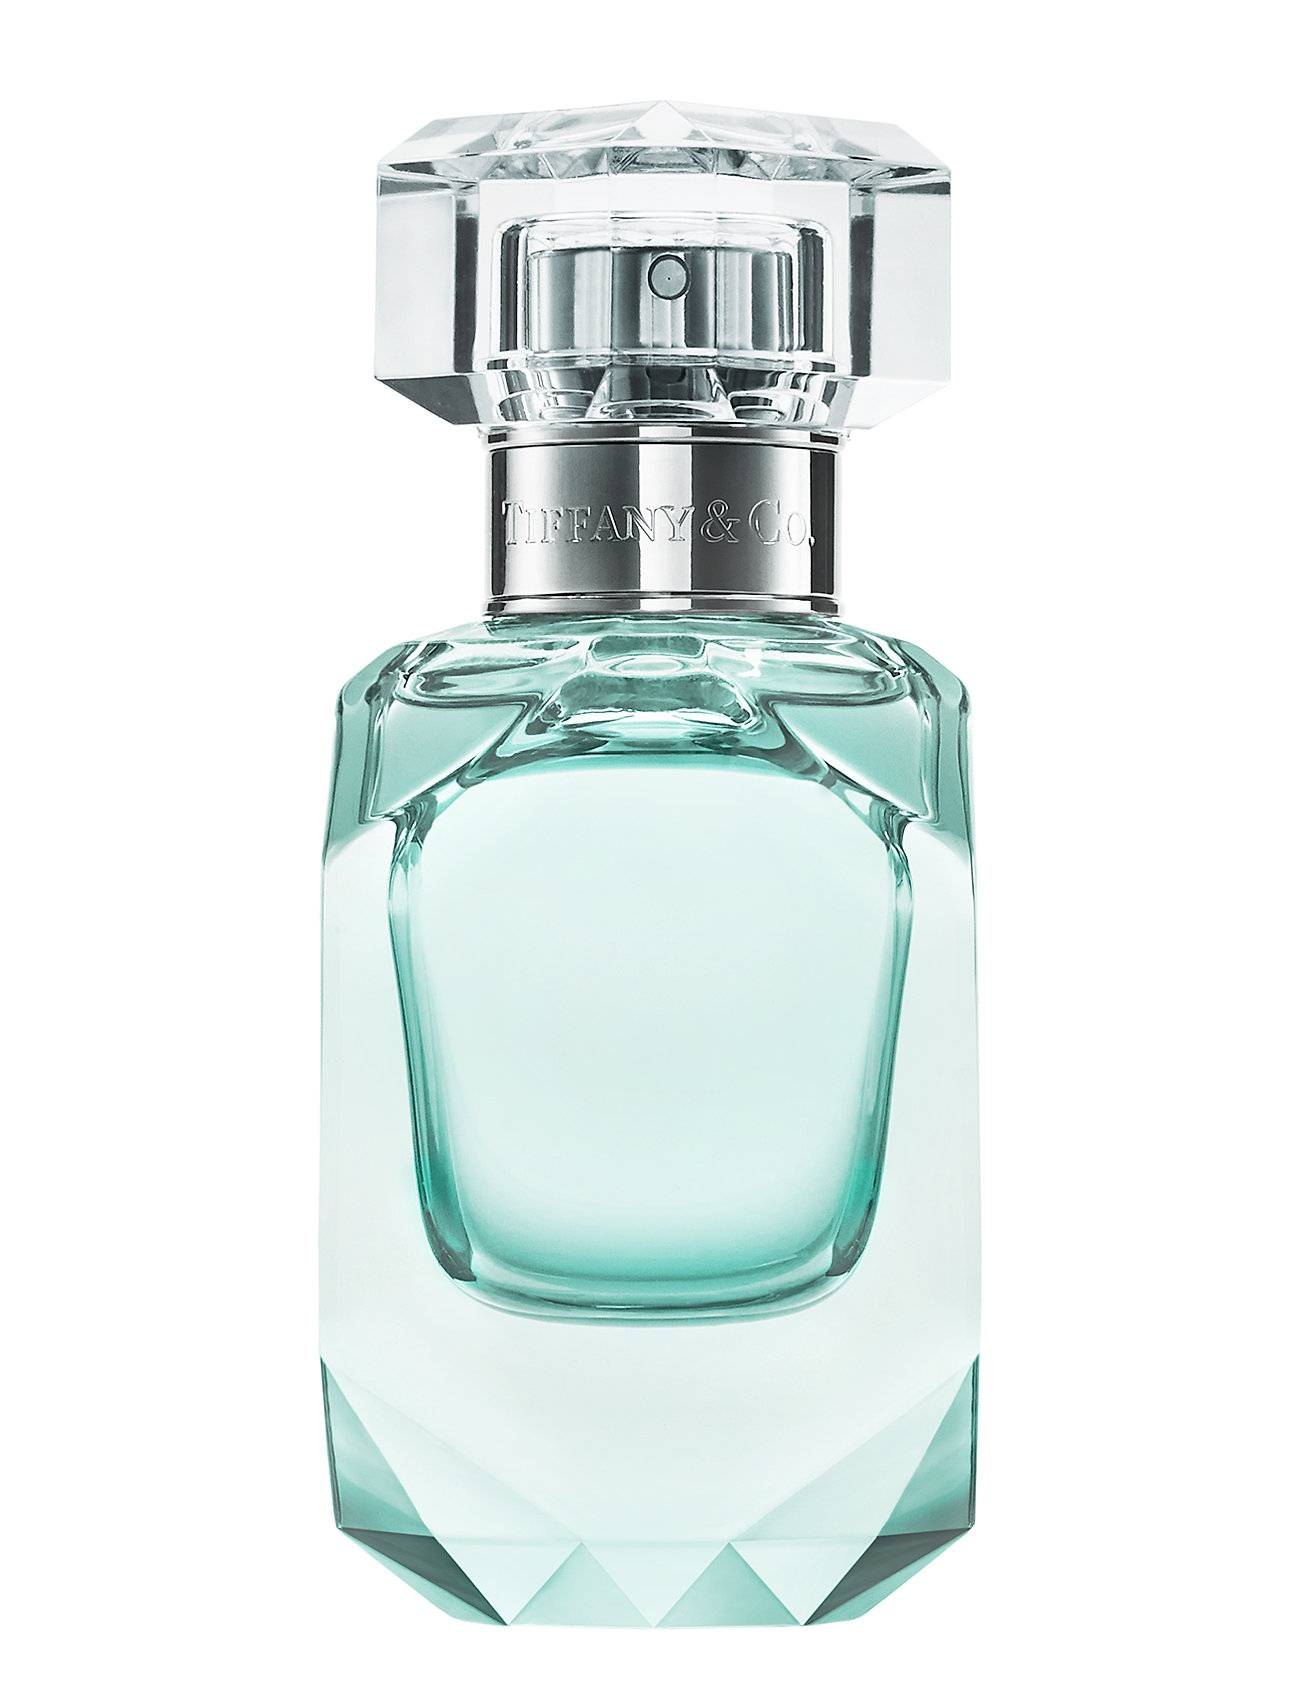 Tiffany & Co Intense Eau Deparfum Hajuvesi Eau De Parfum Tiffany